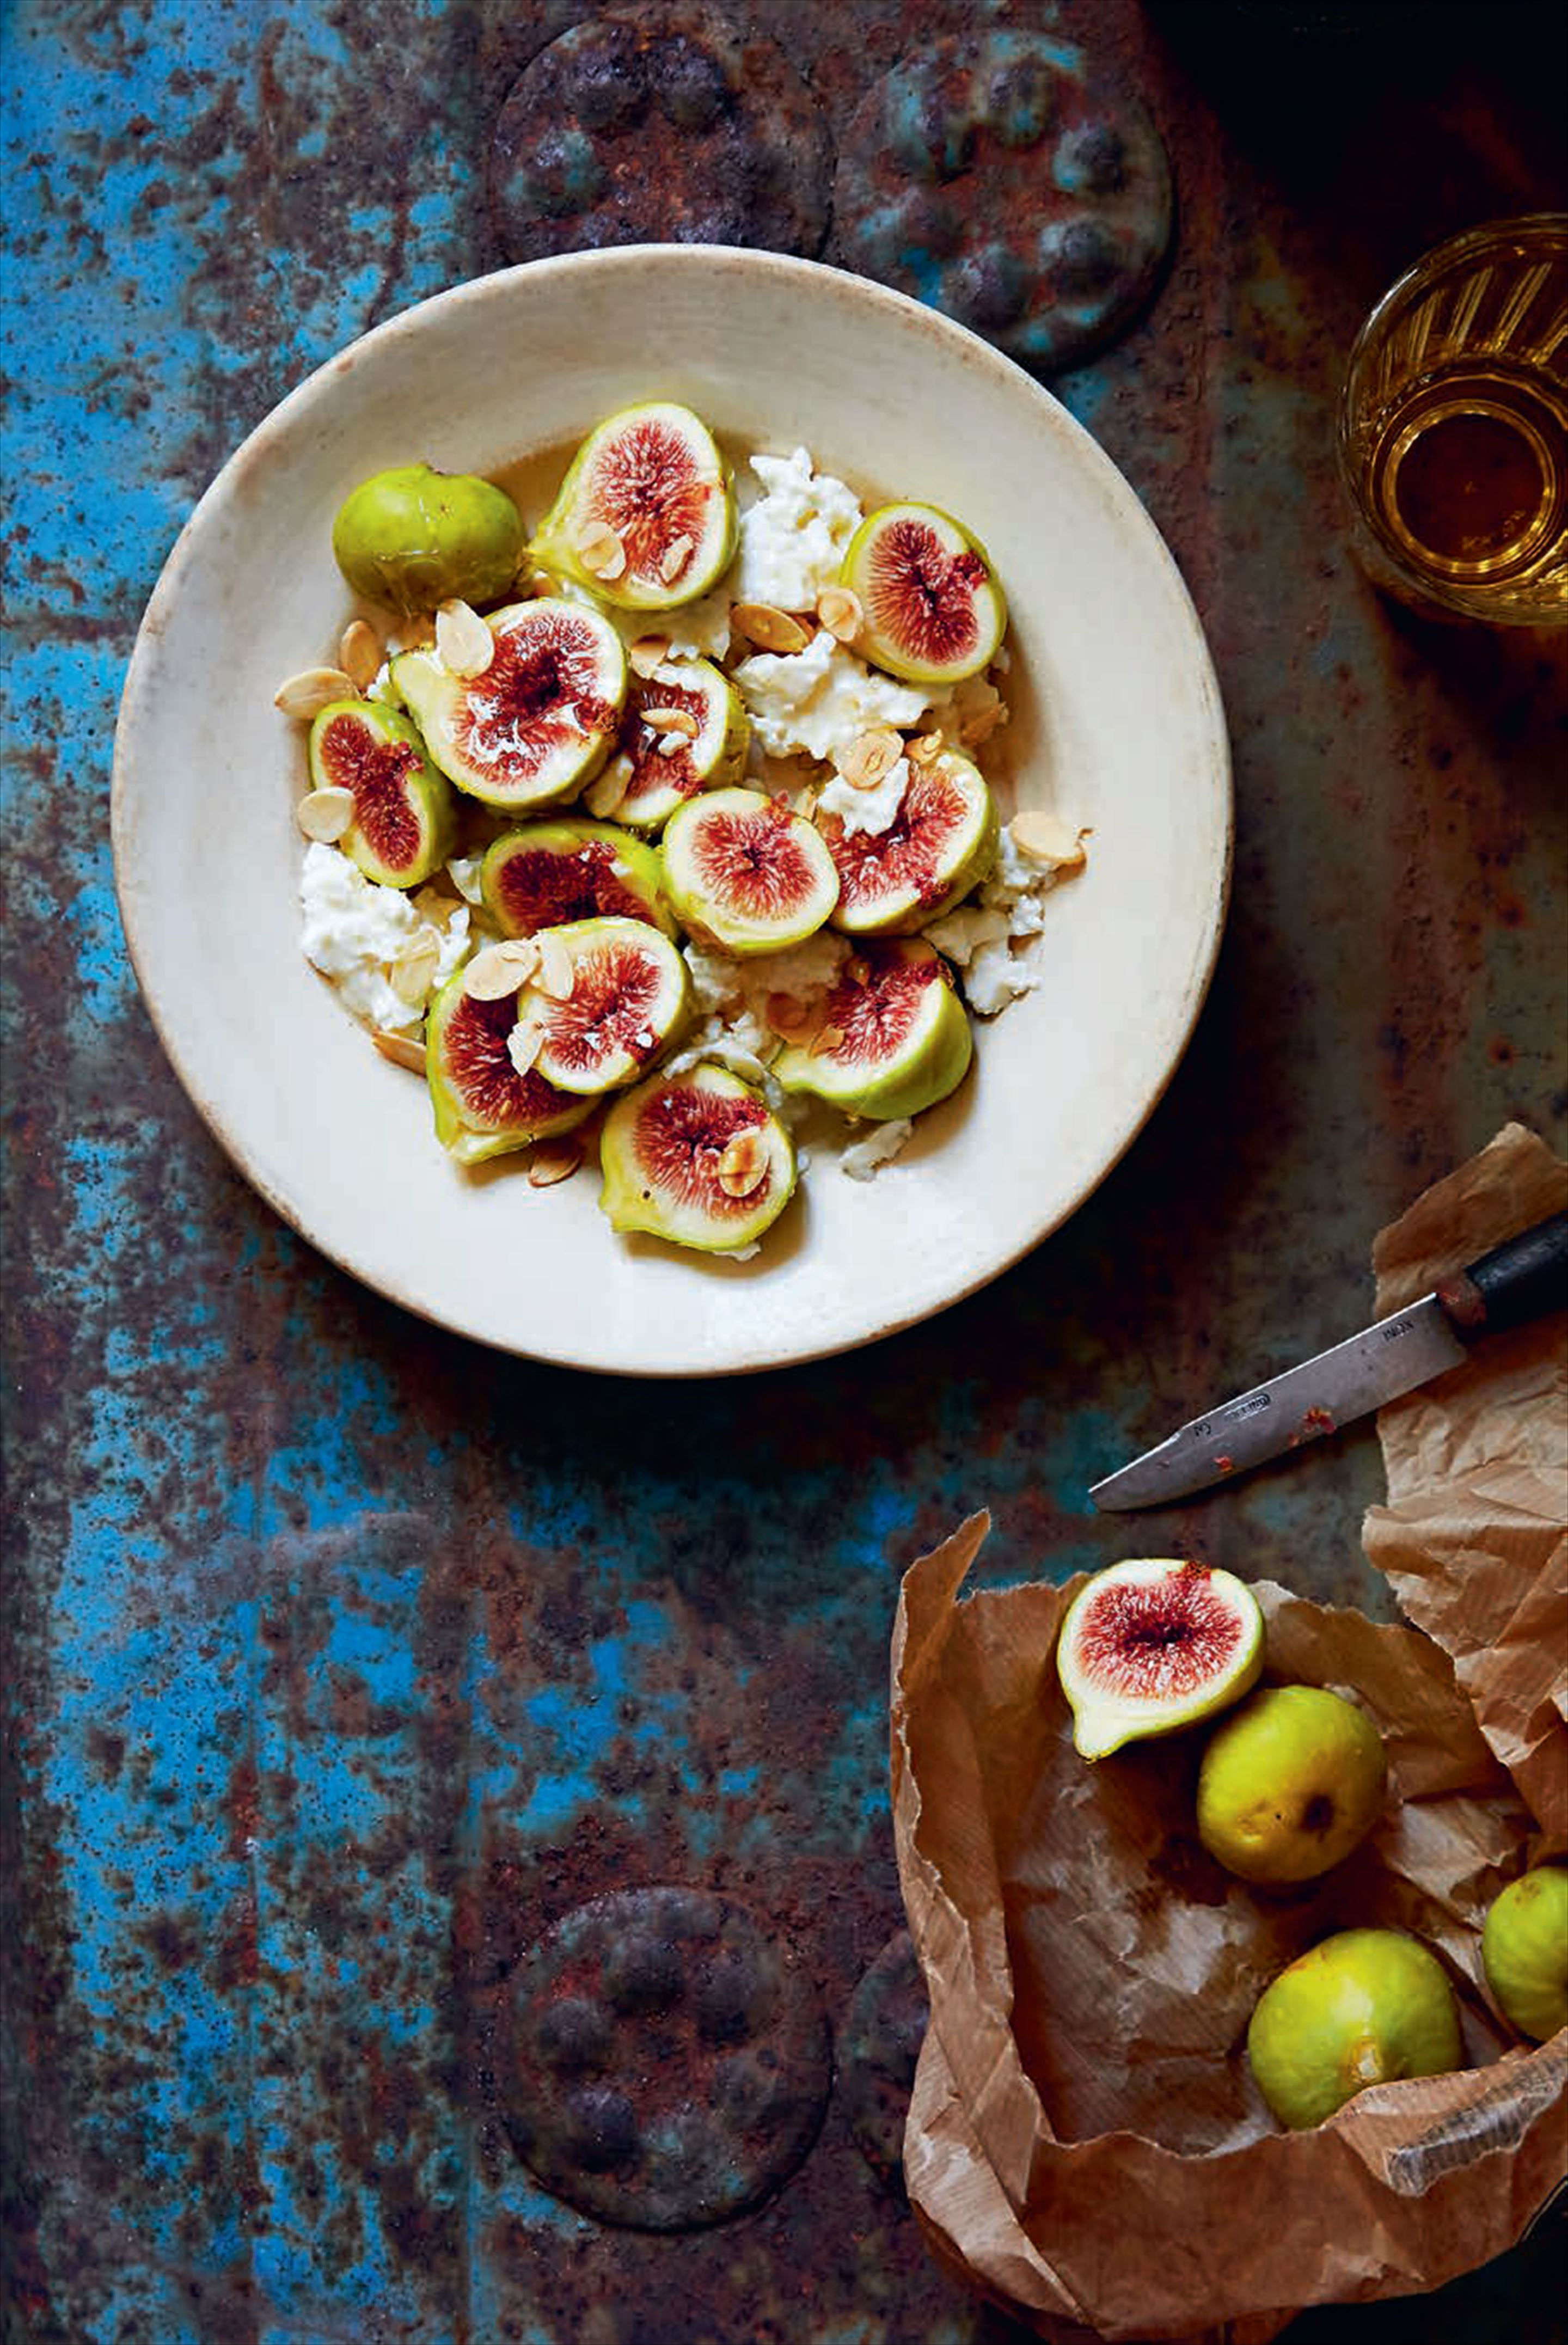 Fresh cheese with figs